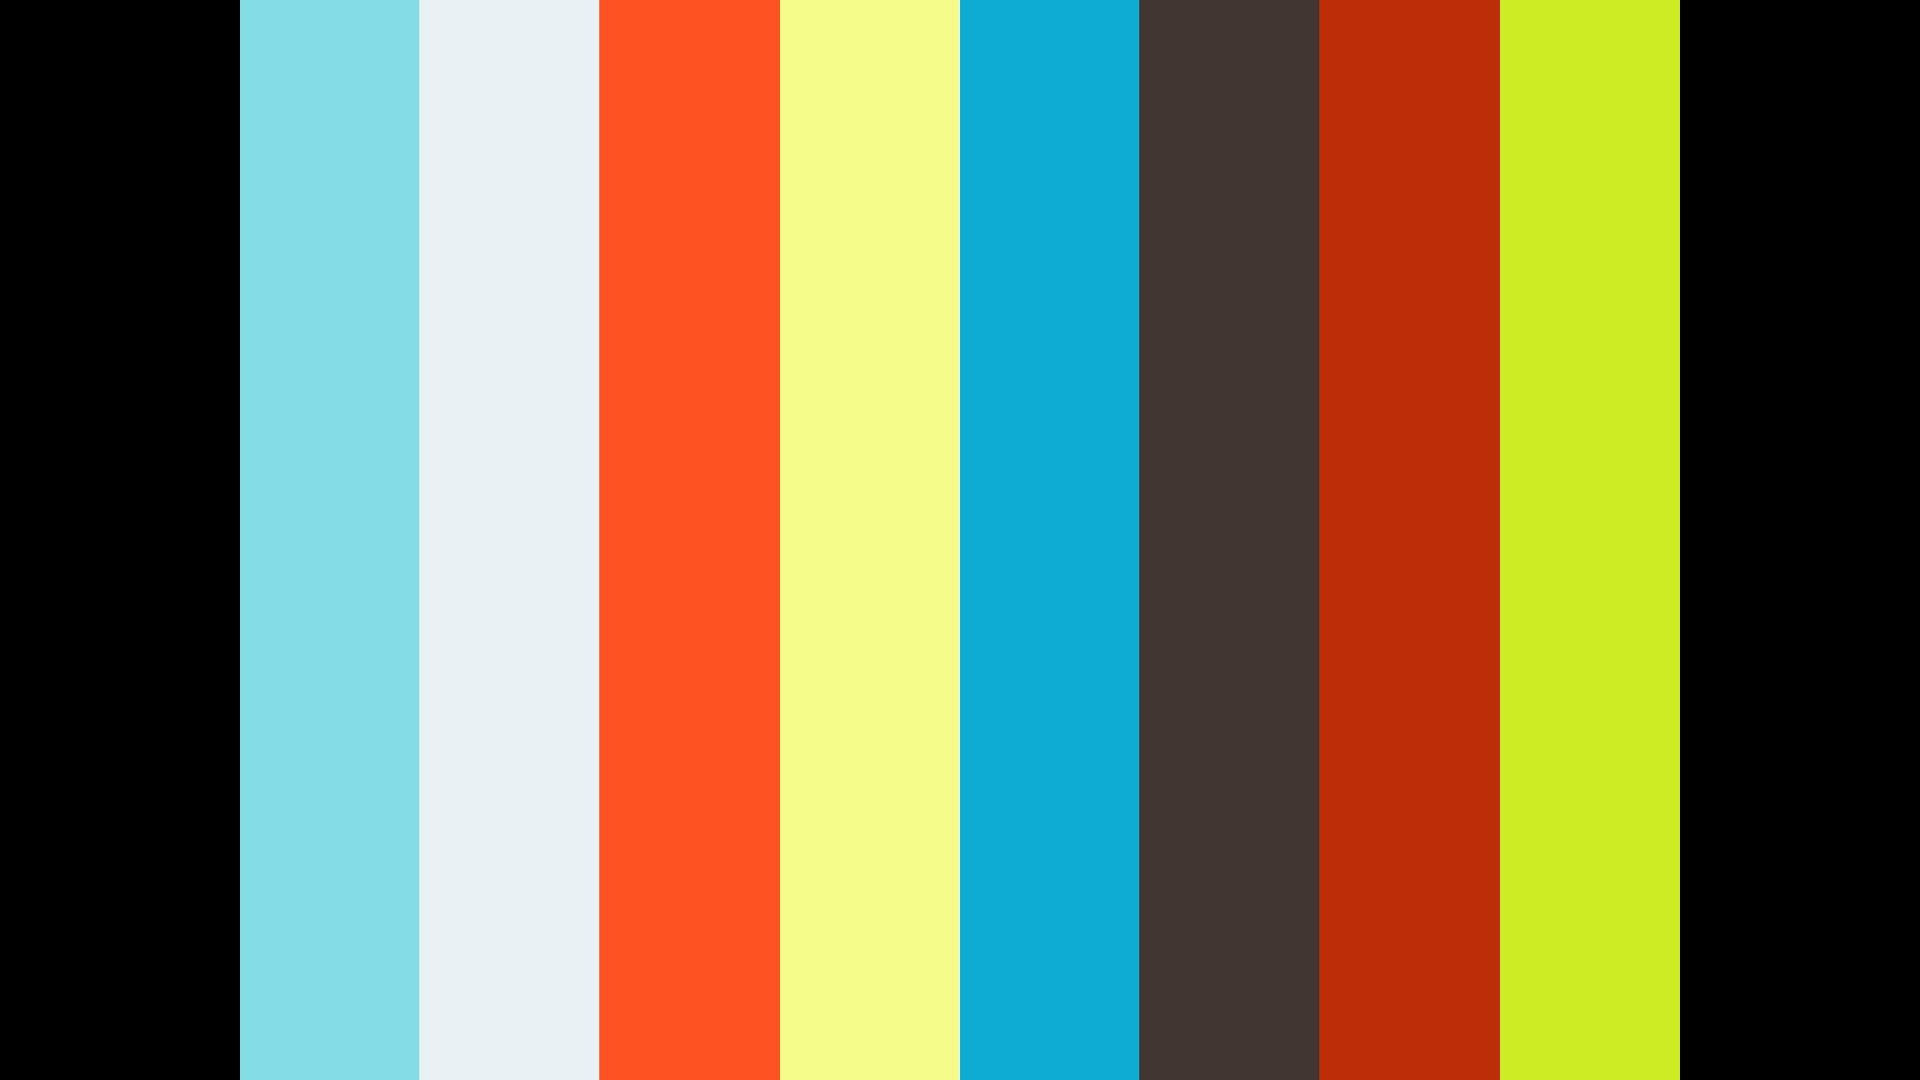 Native Ads or Bacon?